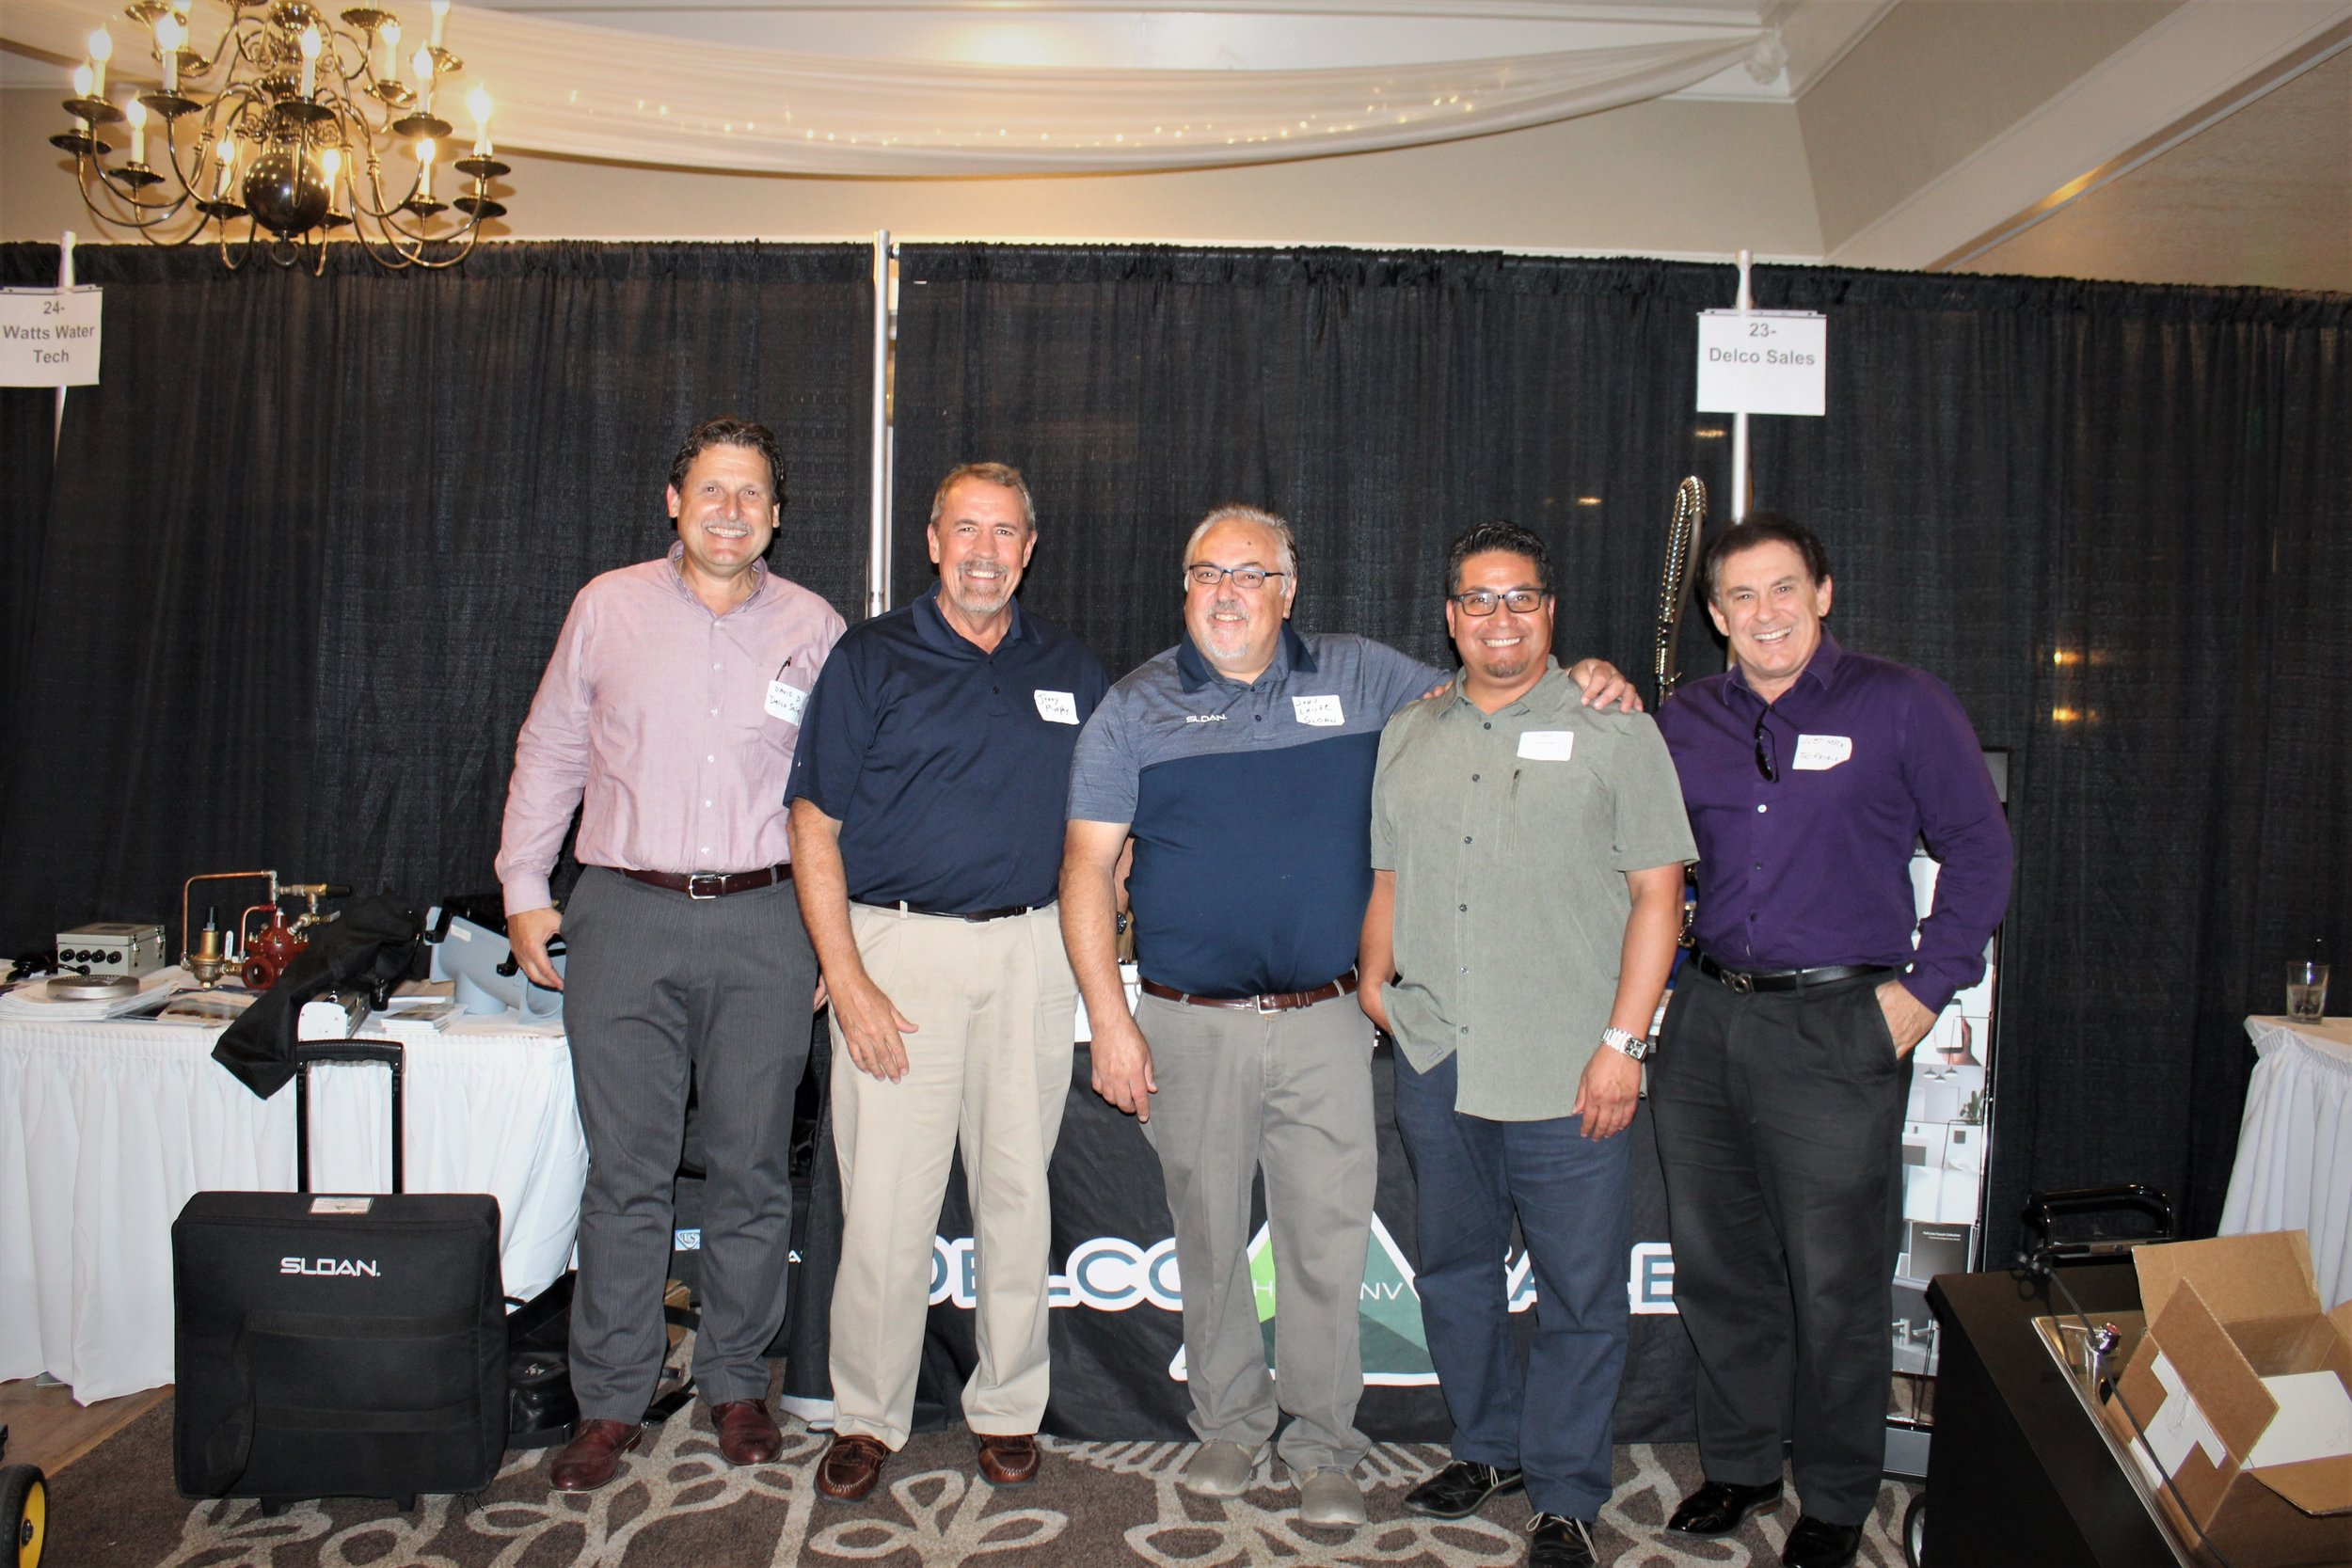 The A Team (from left to right): David David, Jerry Murphy, Sloan Director of Sales – Western Region John Lauer, Alex Jimenez, and Tod Reveles